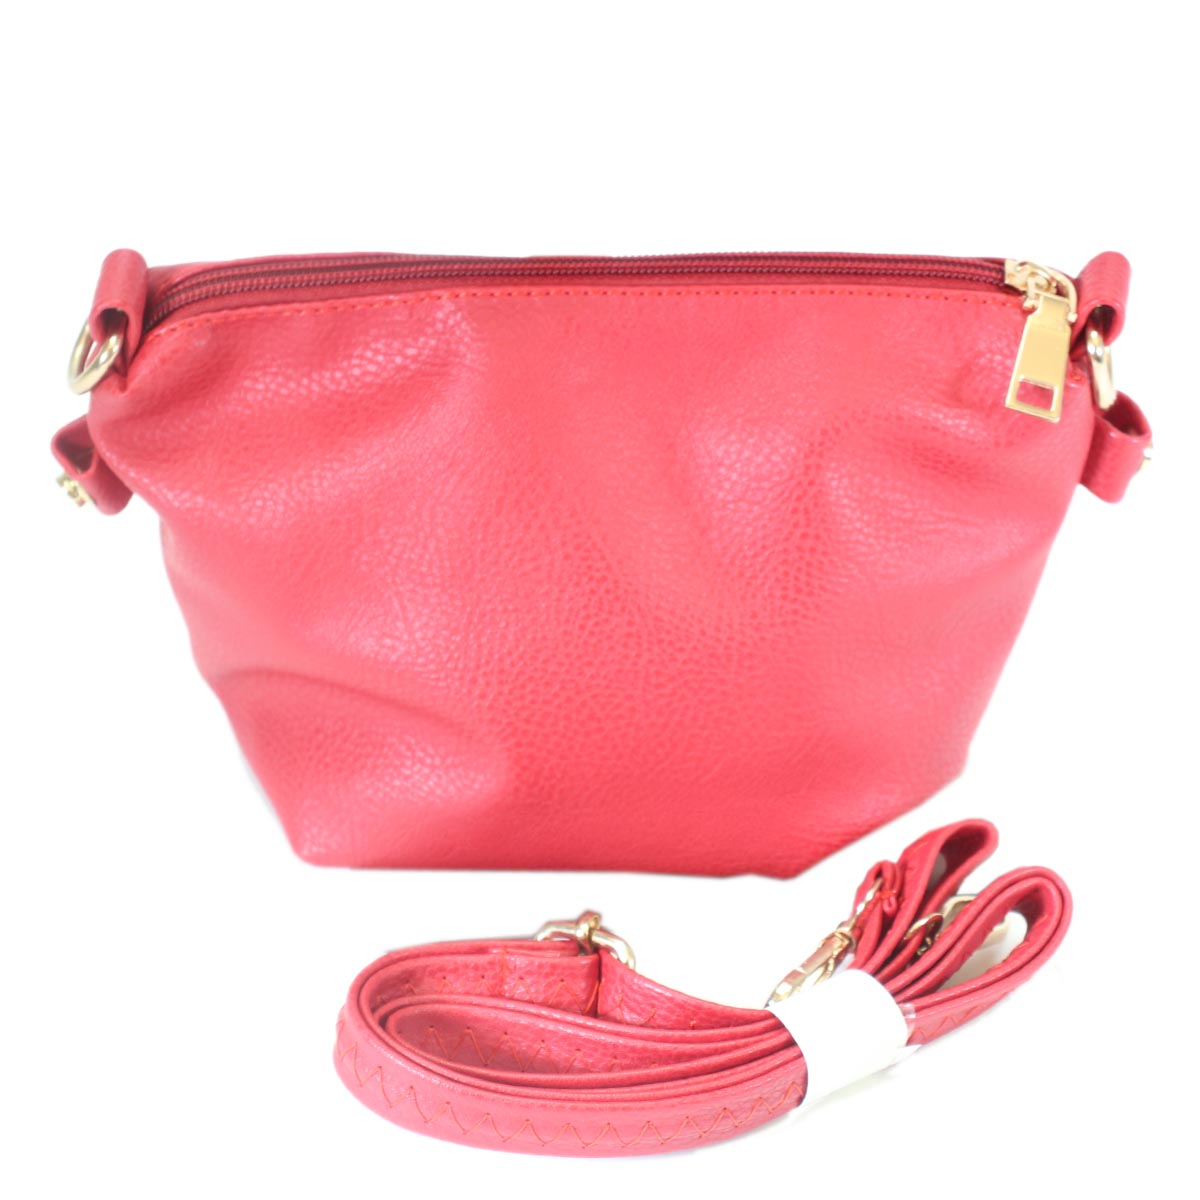 Mini handbag-more colors